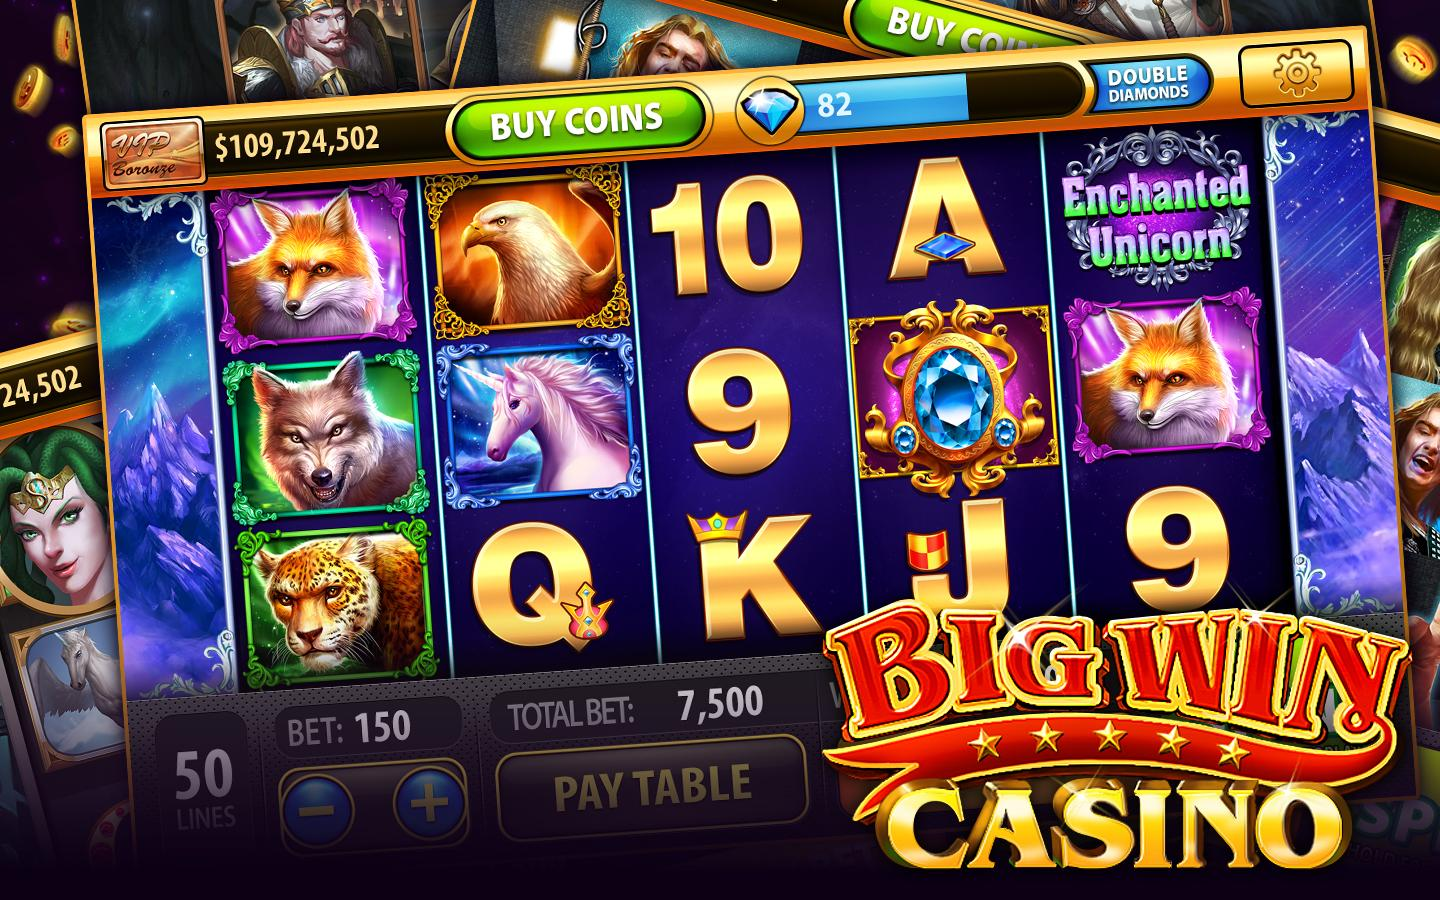 Wild 7 Slots - Win Big Playing Online Casino Games